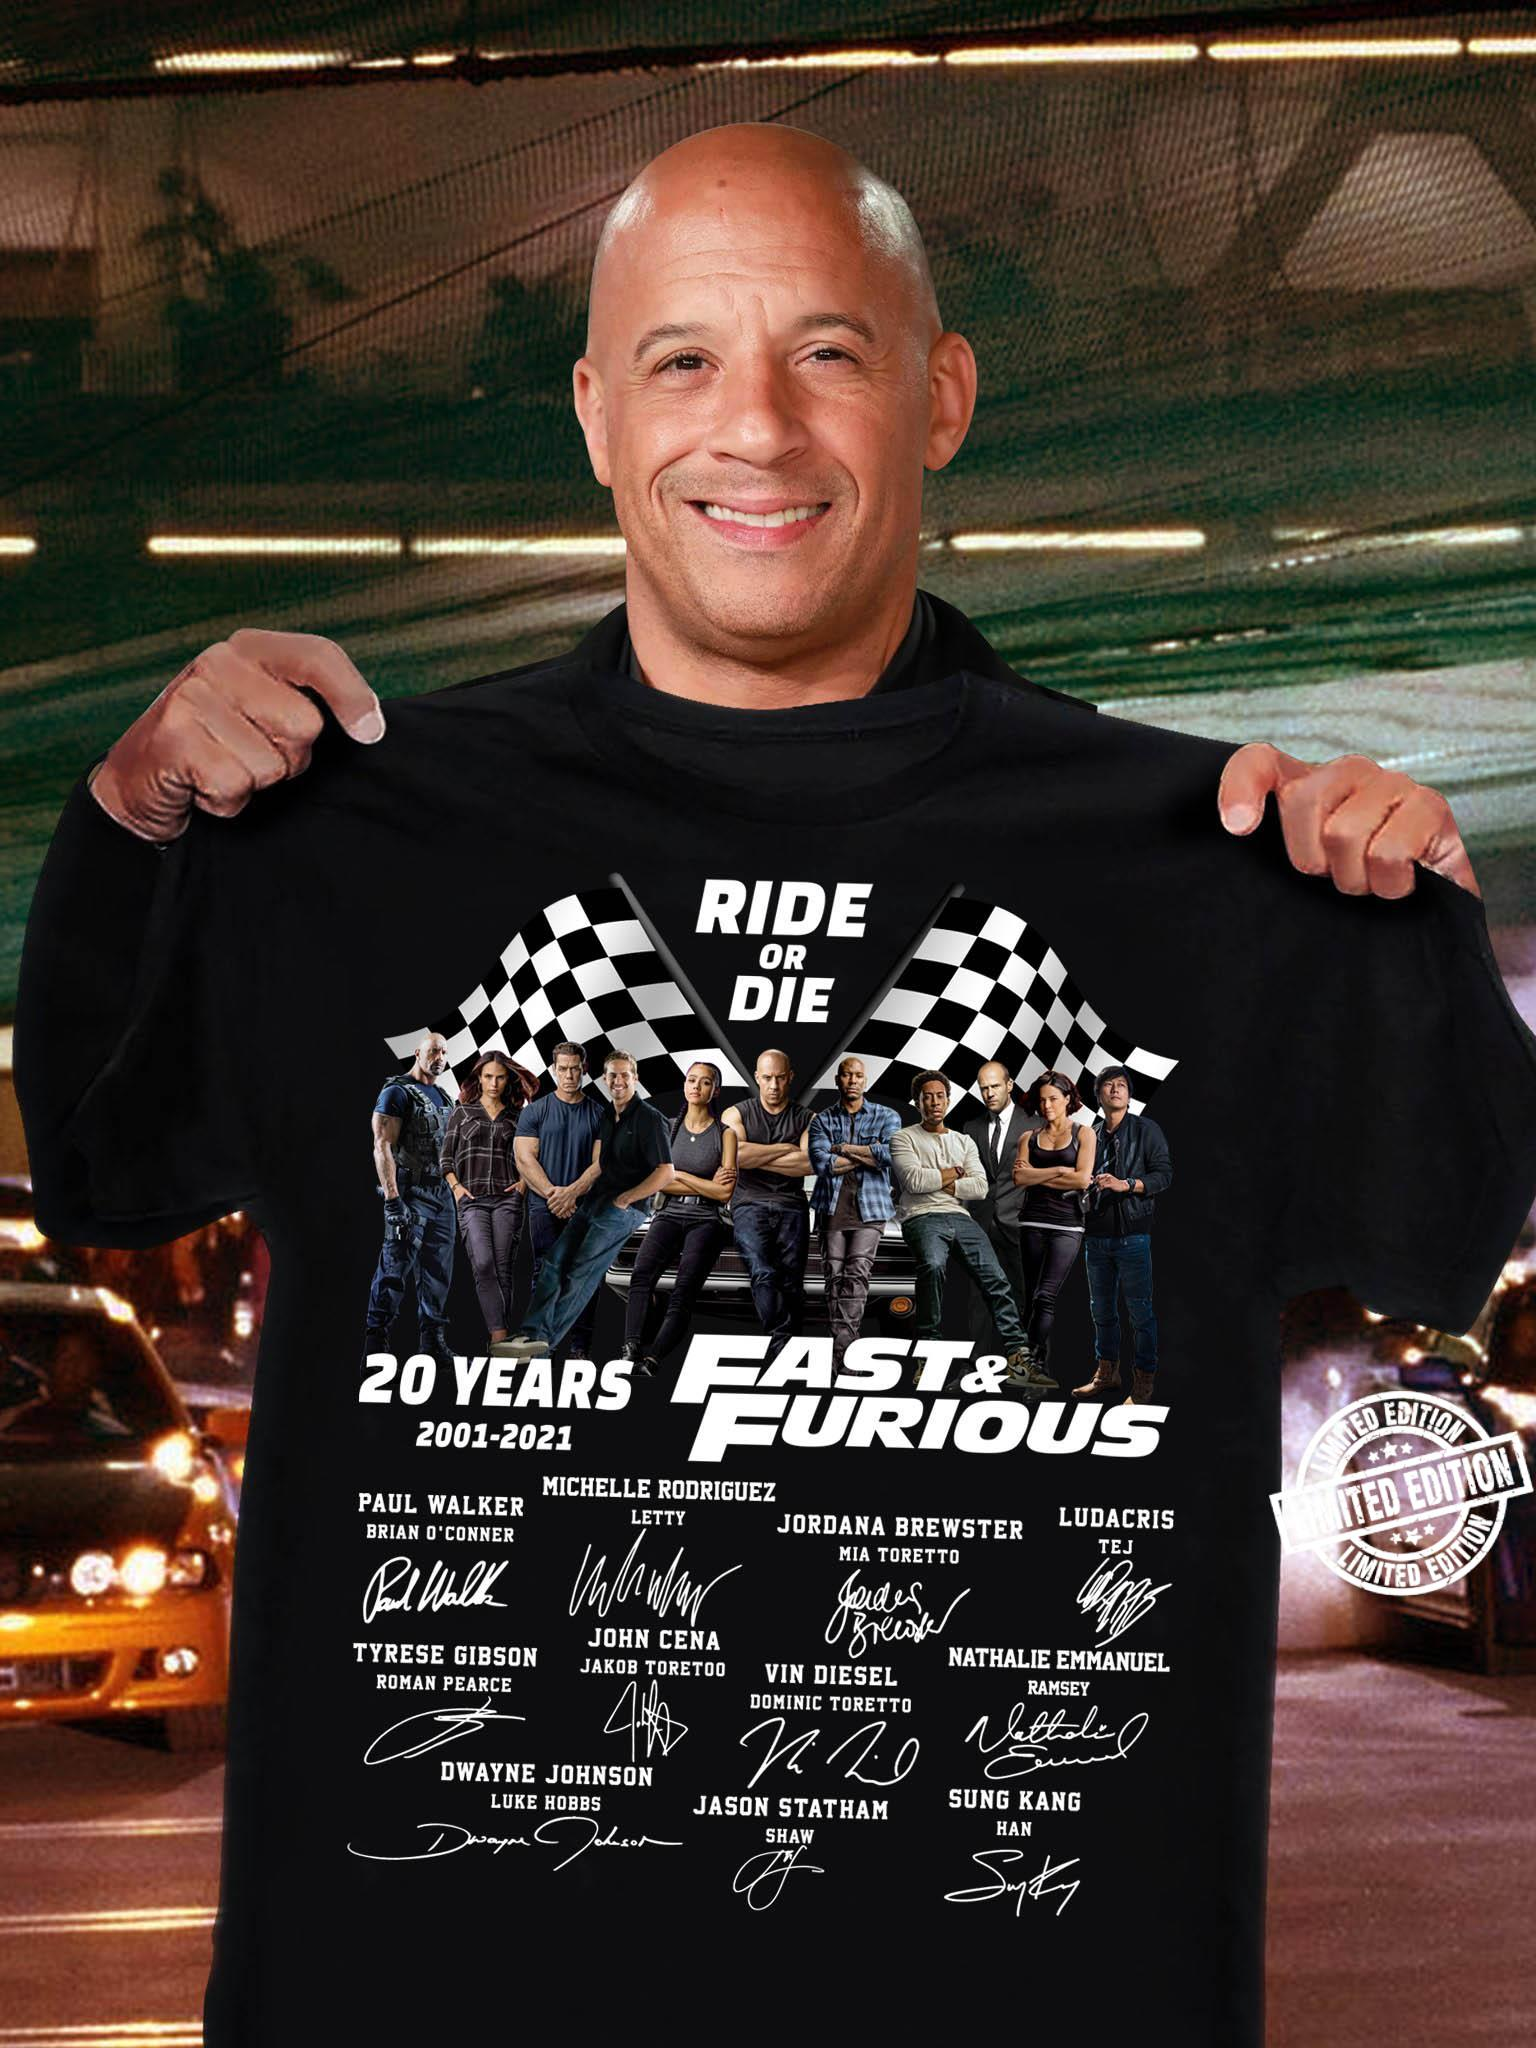 Ride Or Die 20 Years Fast And Furious 2001 2021 Shirt